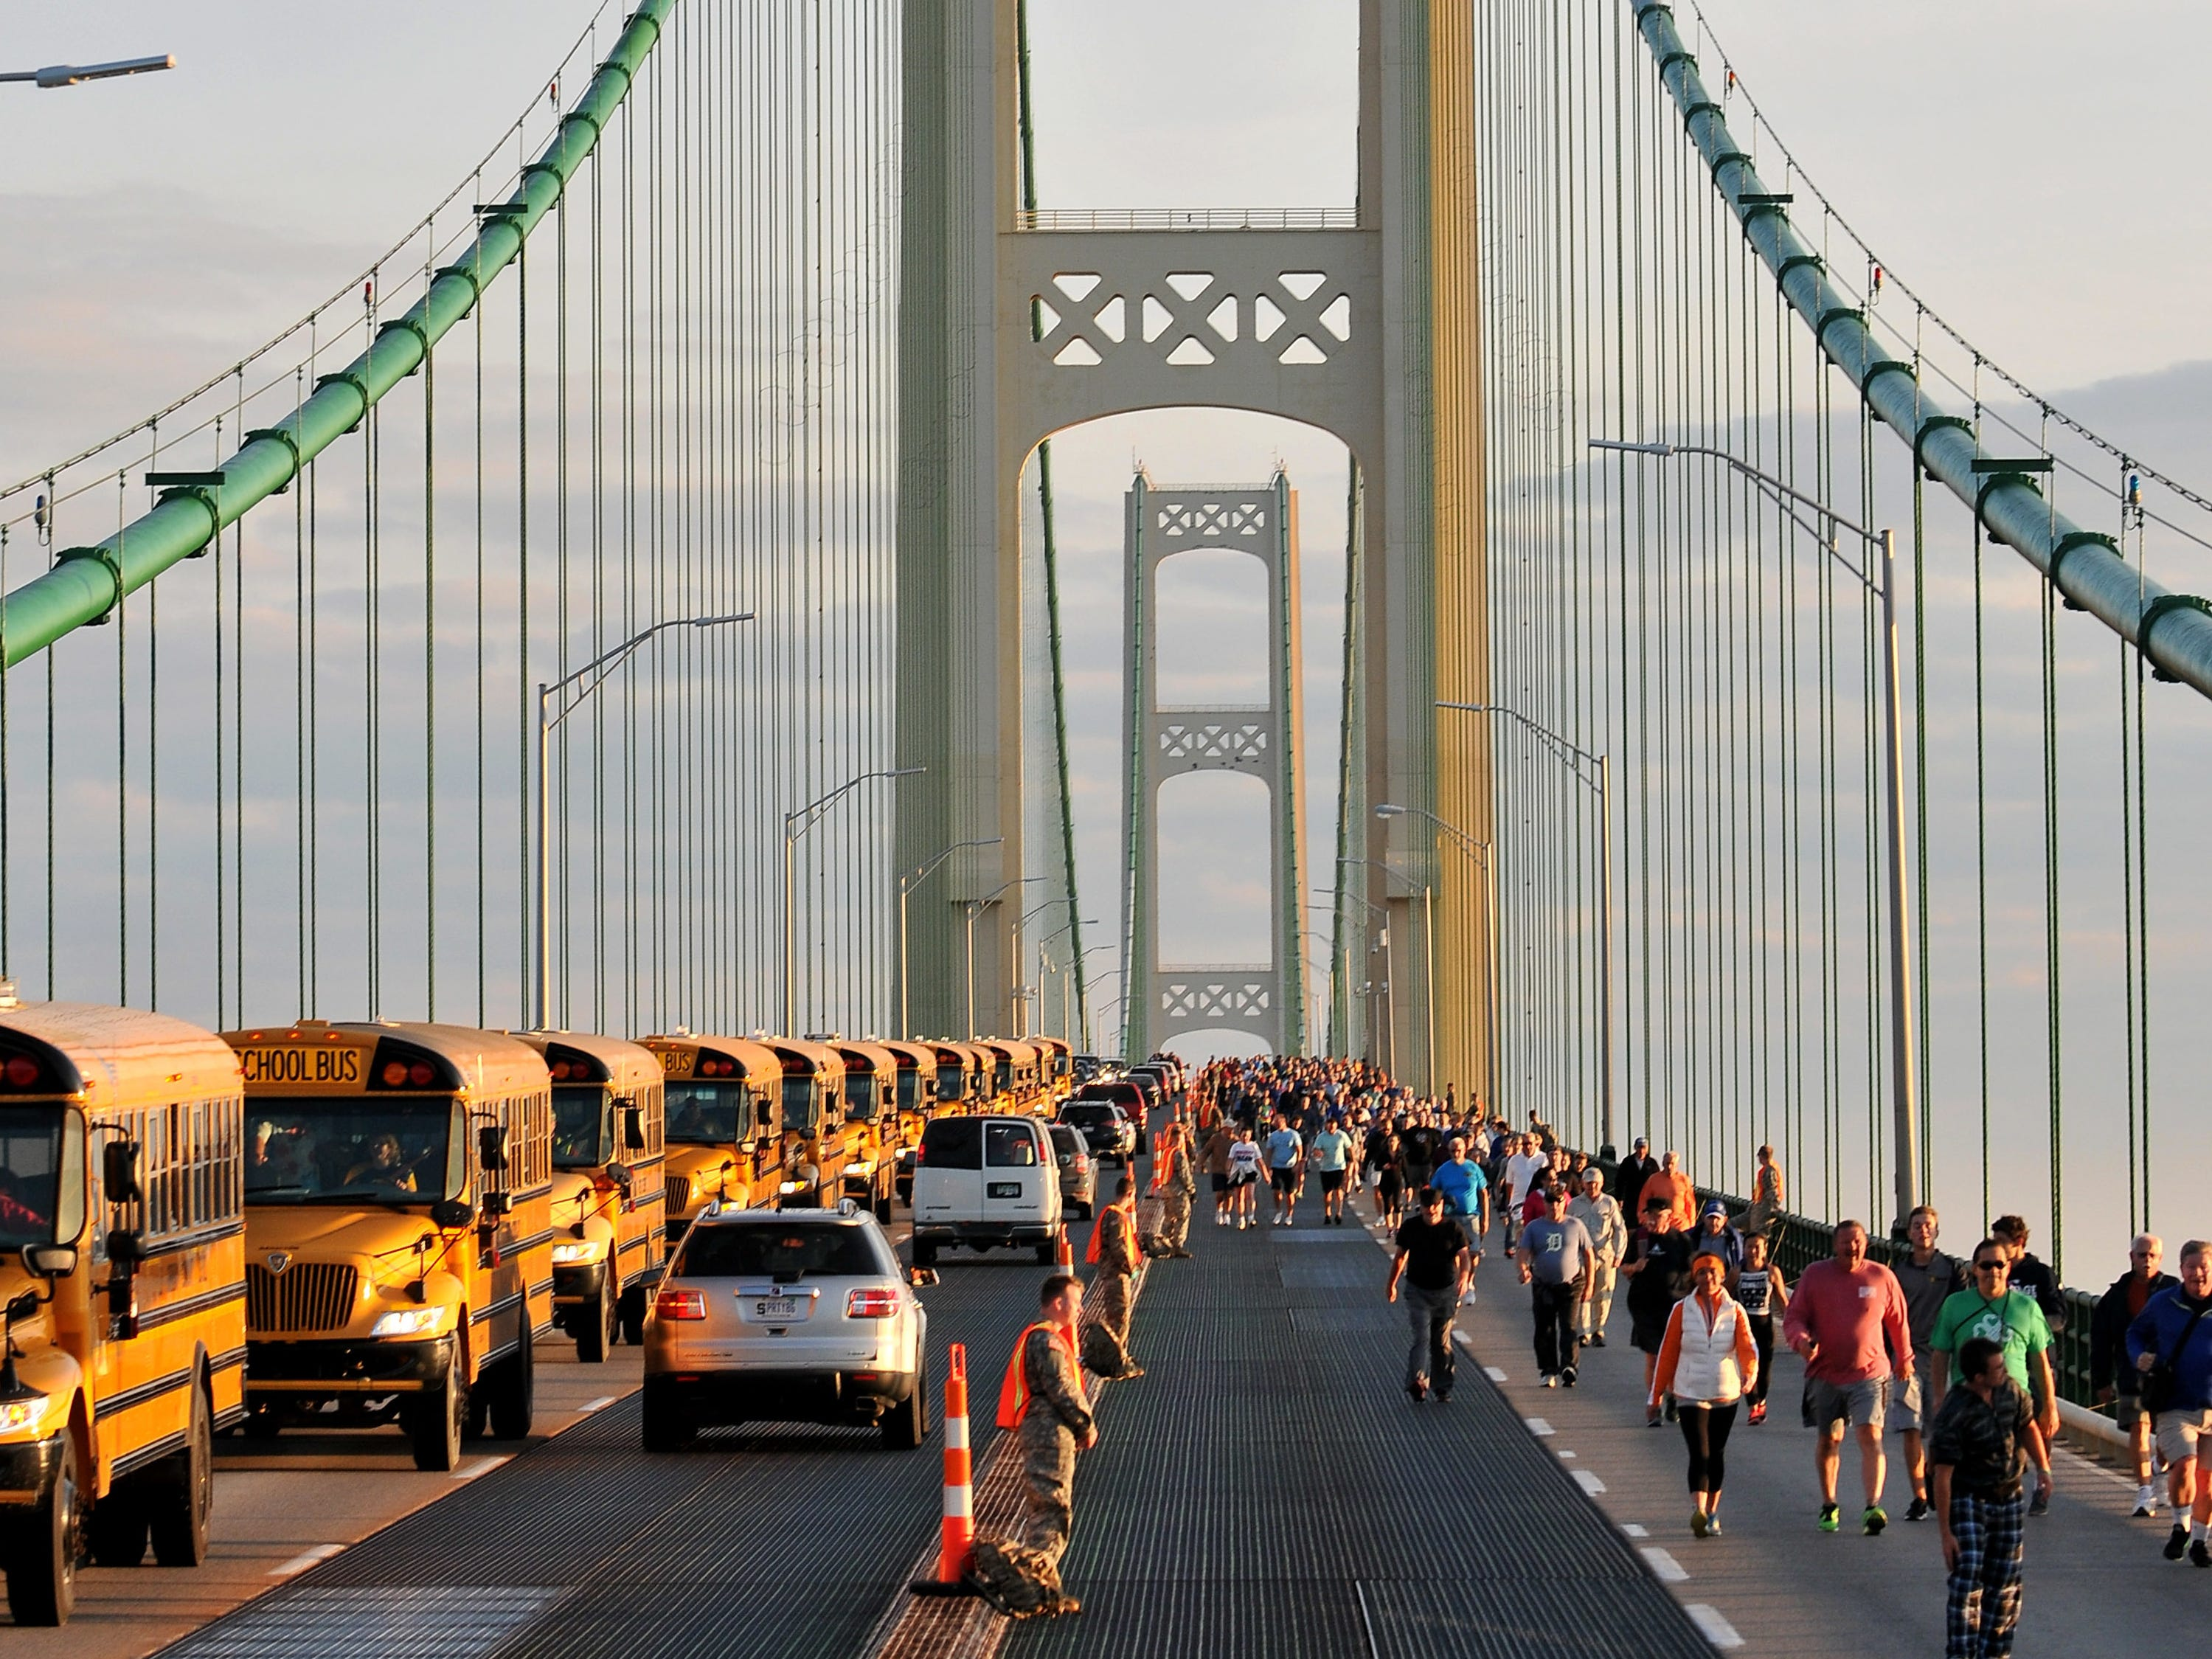 Walkers head south during the 59th annual Mackinac Bridge Walk on Monday, Sept. 5, 2016. Labor Day is the only time pedestrians are allowed on the five-mile-long span which connects the lower peninsula at Mackinaw City, Mich., to the Upper Peninsula at St. Ignace, Mich.